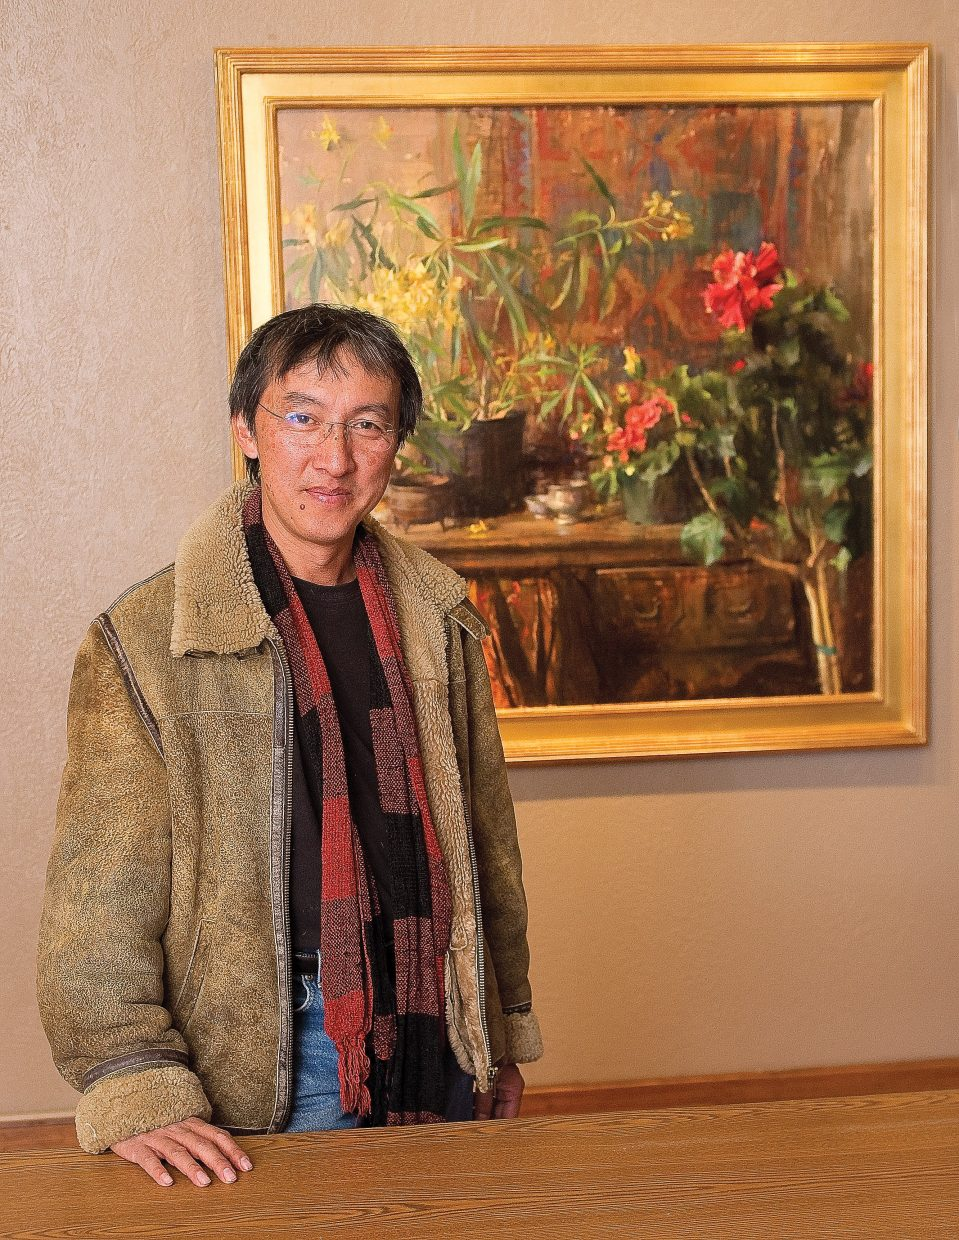 Denver-based artist Quang Ho will have his work featured at the Steamboat Art Museum starting Friday until April 14.